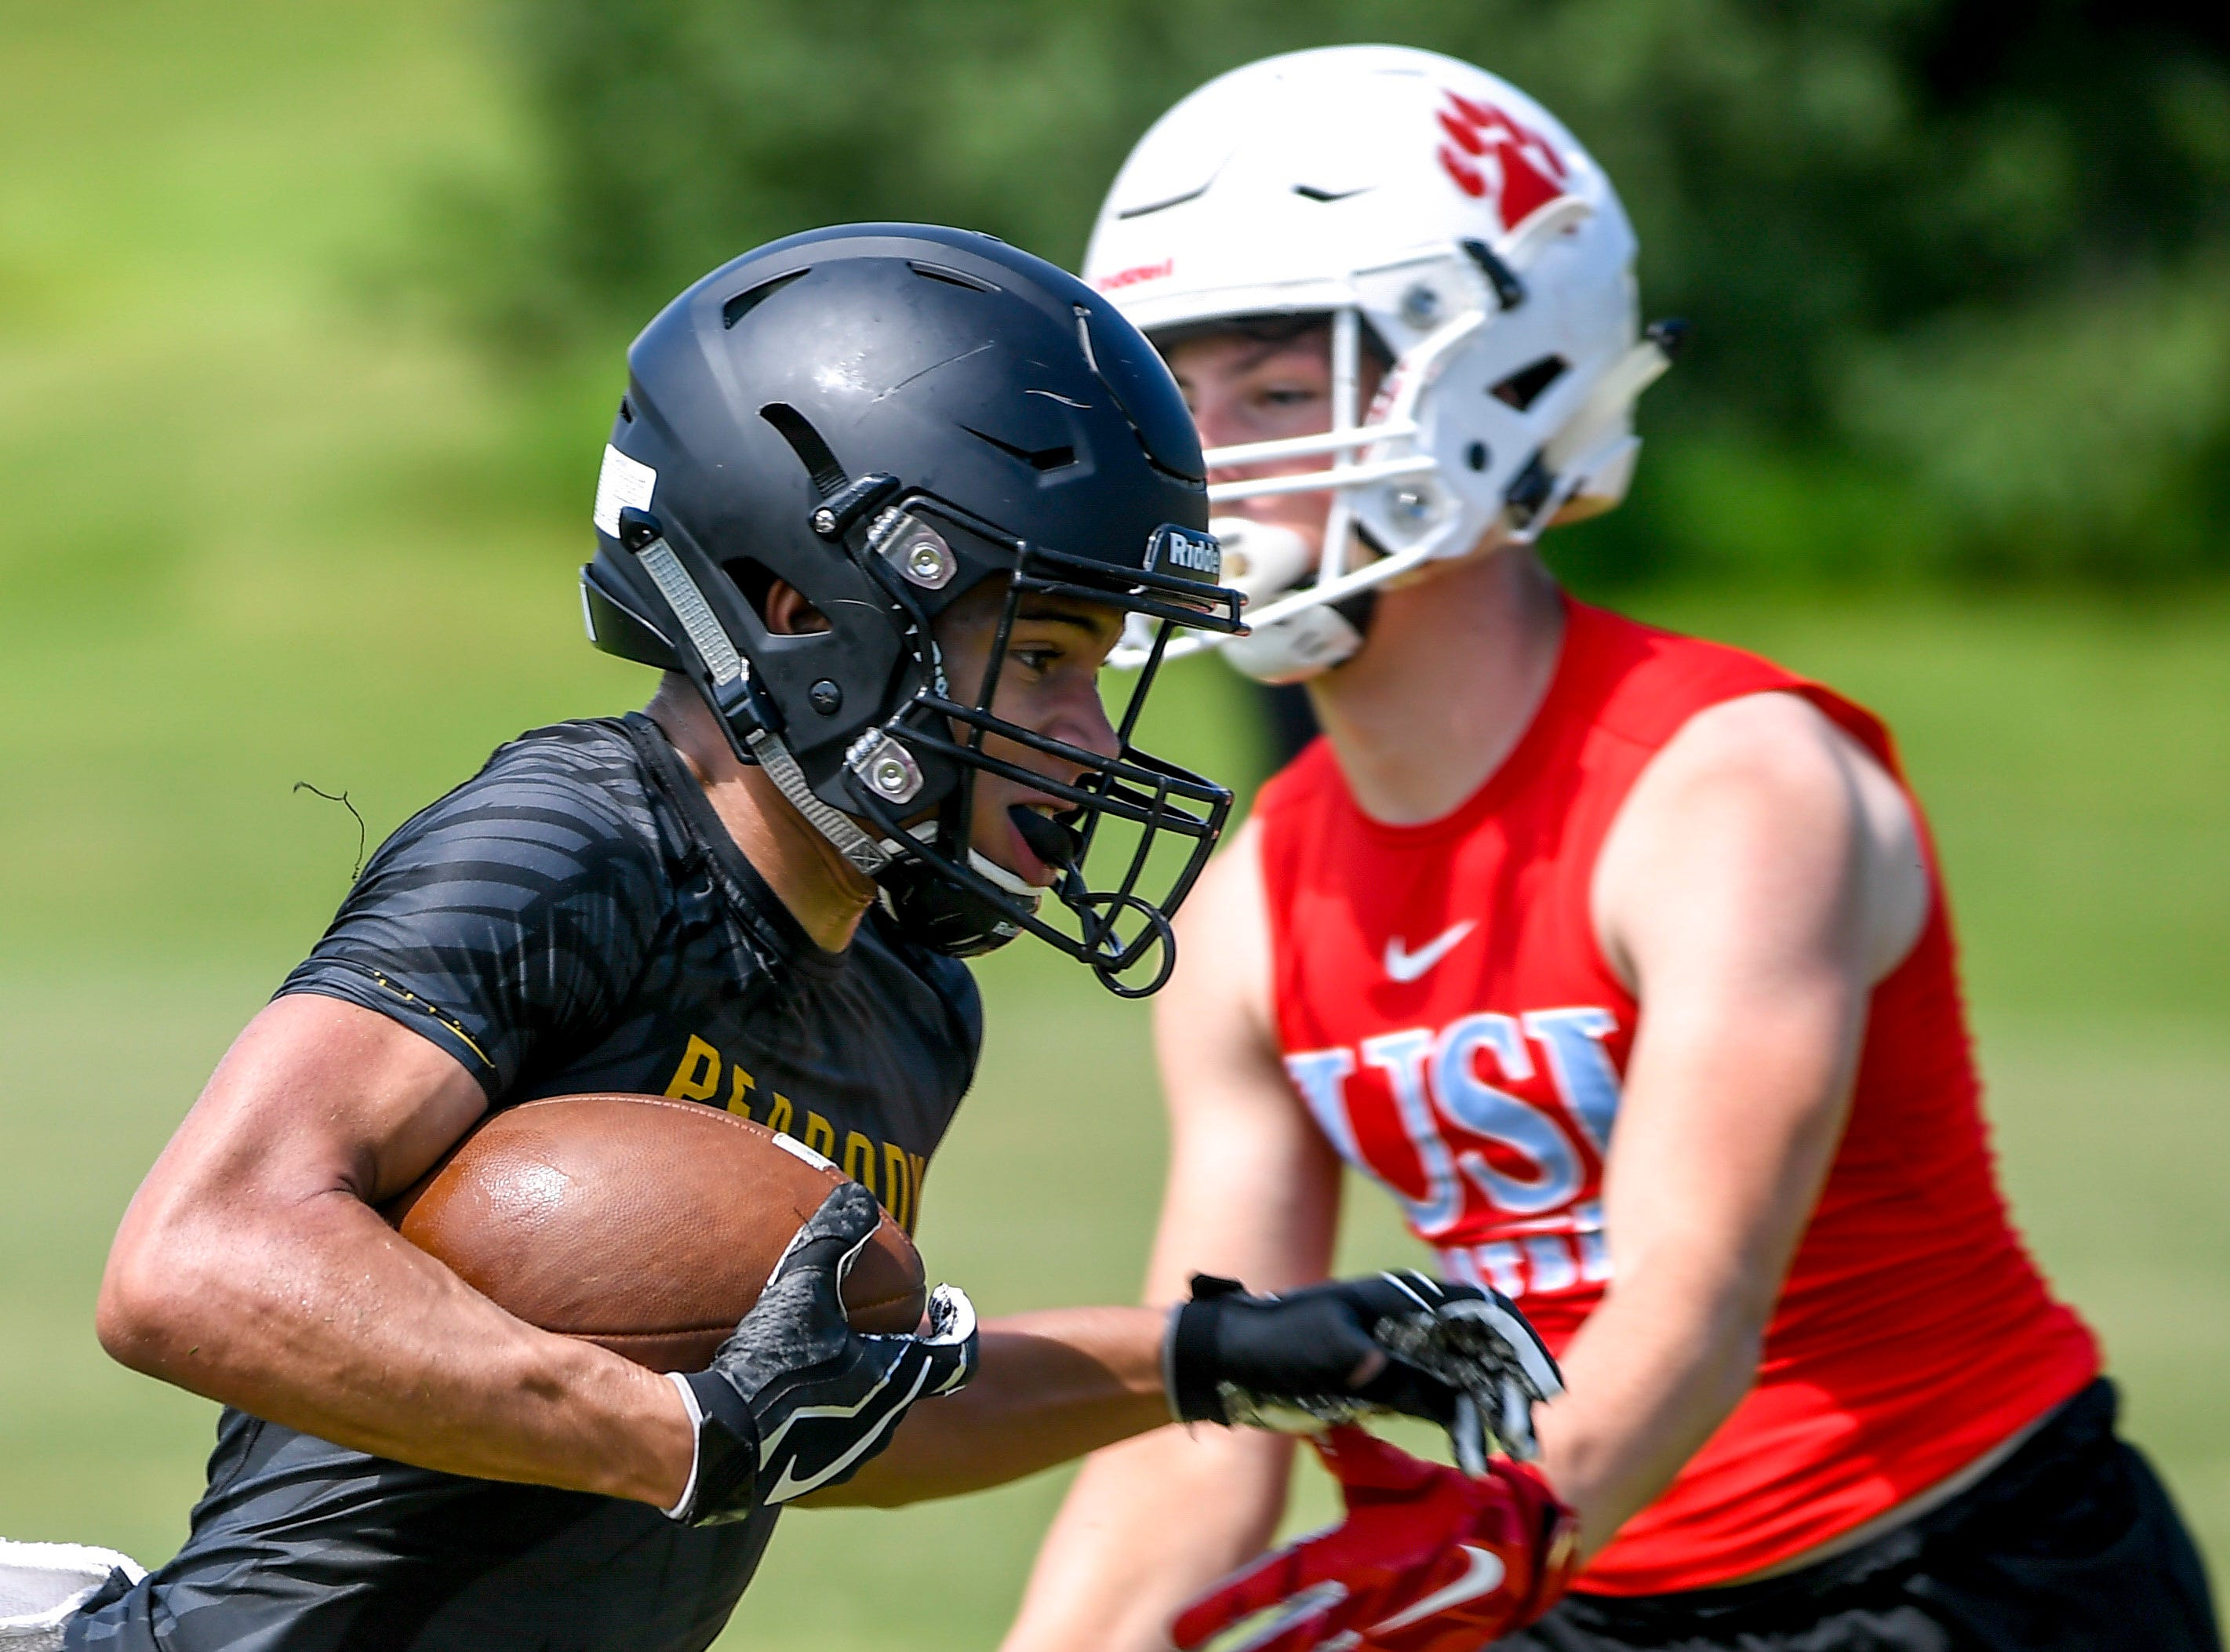 Scenes from a seven on seven football game between Peabody High School and University School of Jackson at Peabody High School on Tuesday, July 10, 2018 in Jackson, TN. Henry Taylor | The Jackson Sun